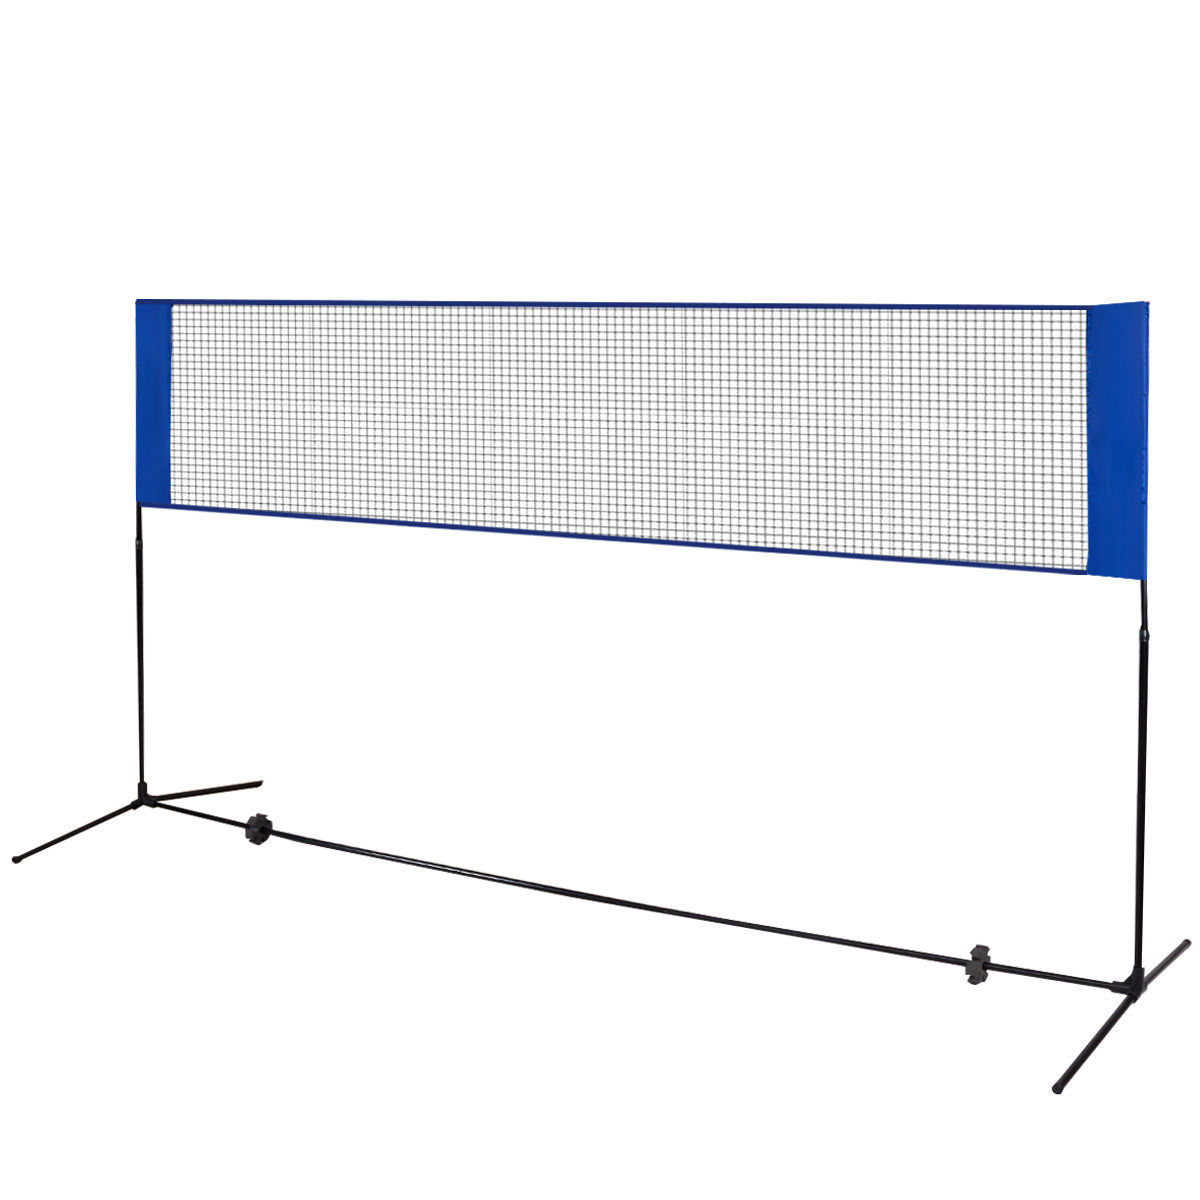 Portable 10' x 5' Beach Badminton Training Net w/ Carrying Bag